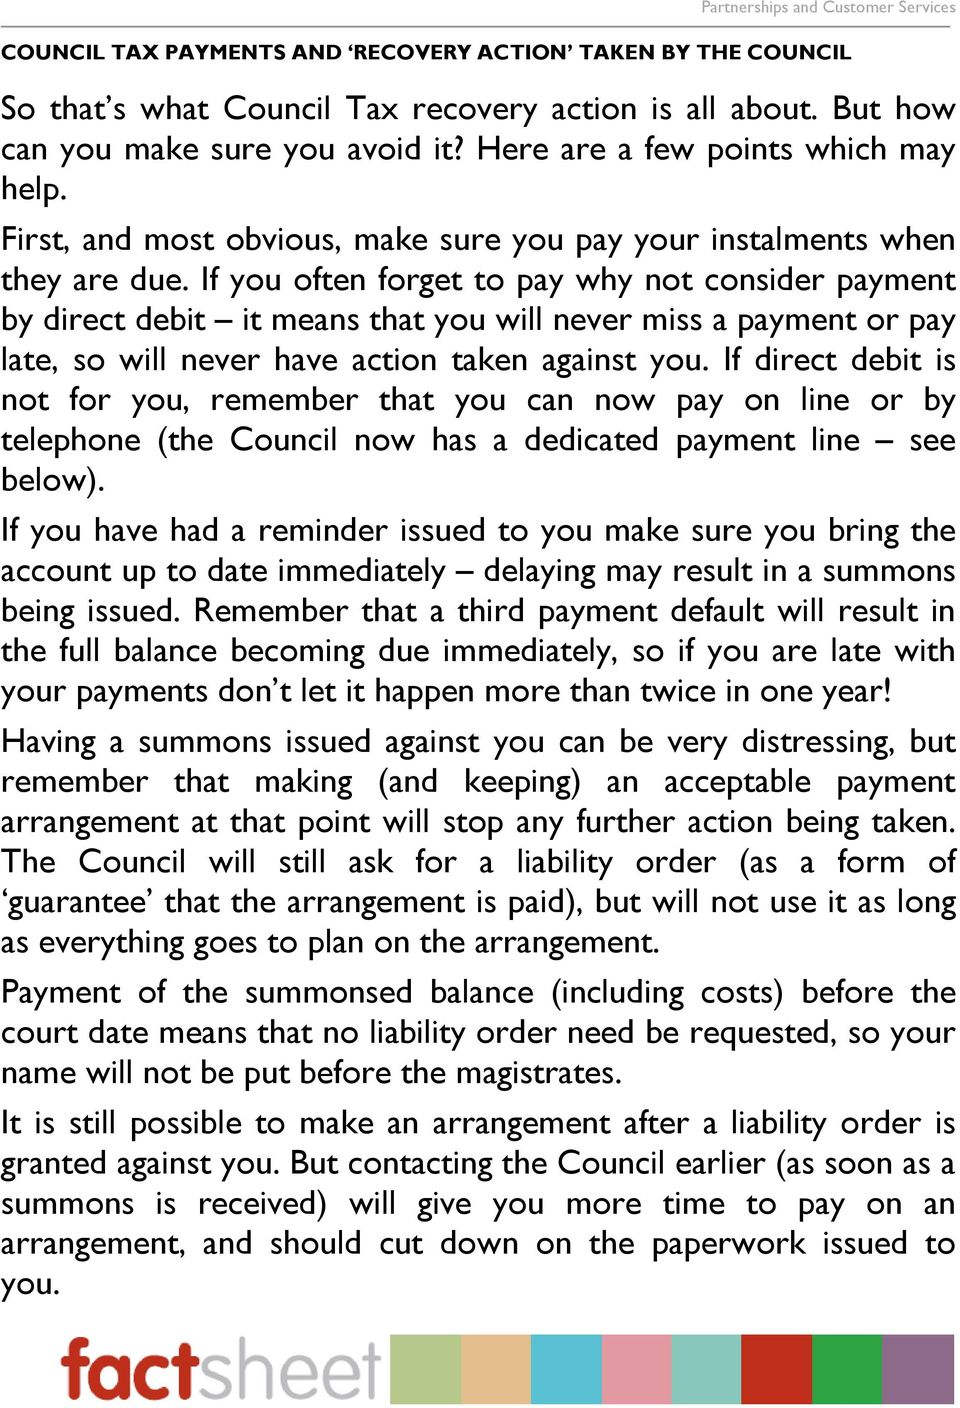 If you often forget to pay why not consider payment by direct debit it means that you will never miss a payment or pay late, so will never have action taken against you.